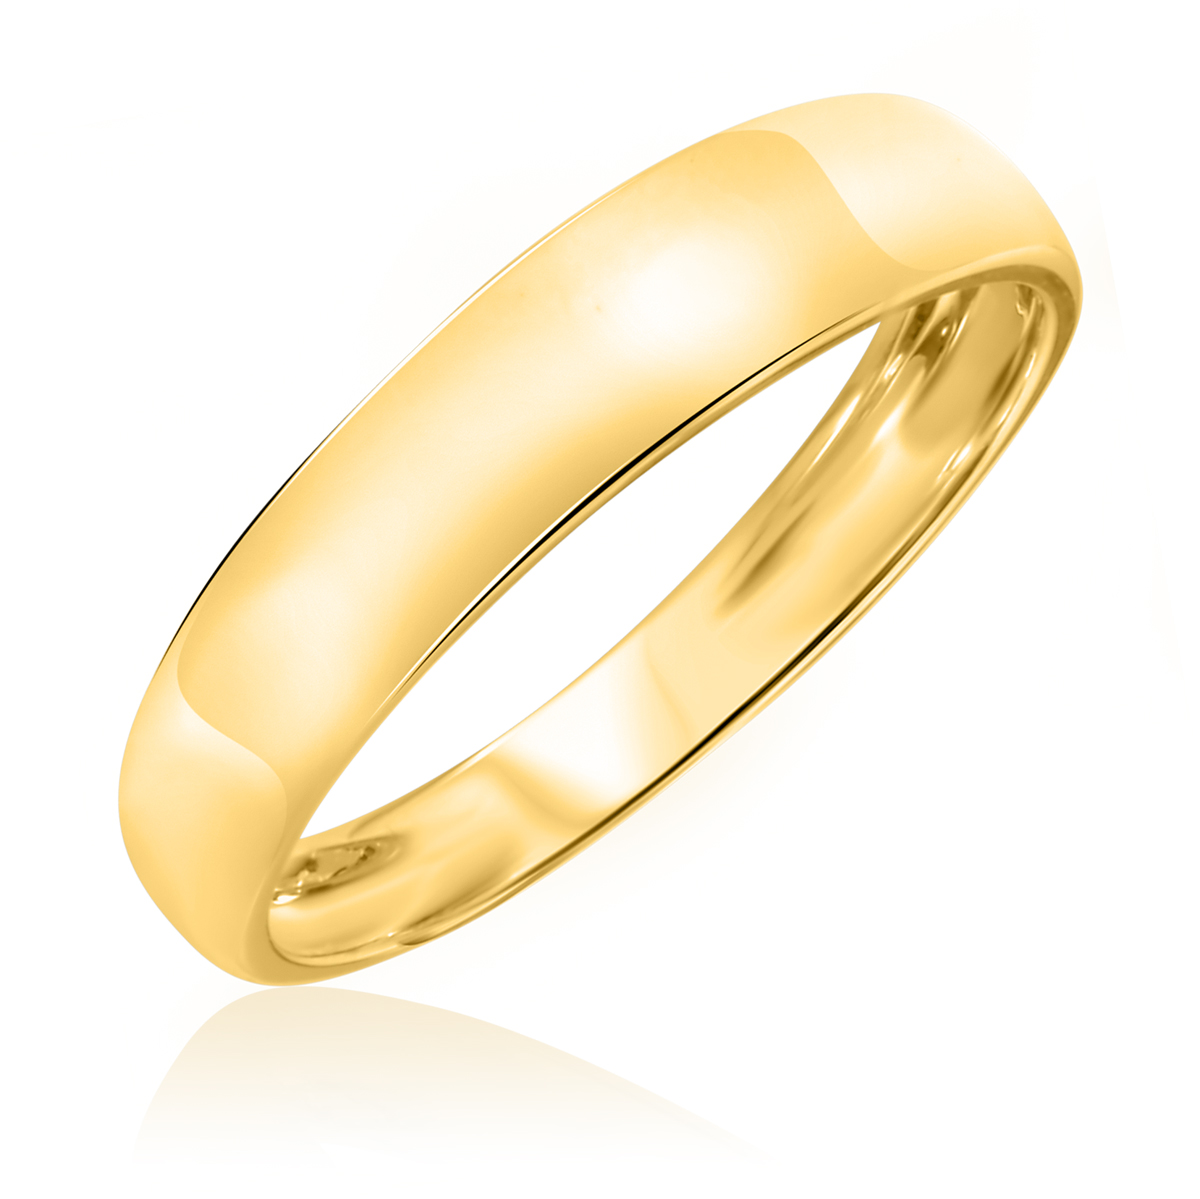 No DiamondsTraditional Mens Wedding Band 14K Yellow Gold